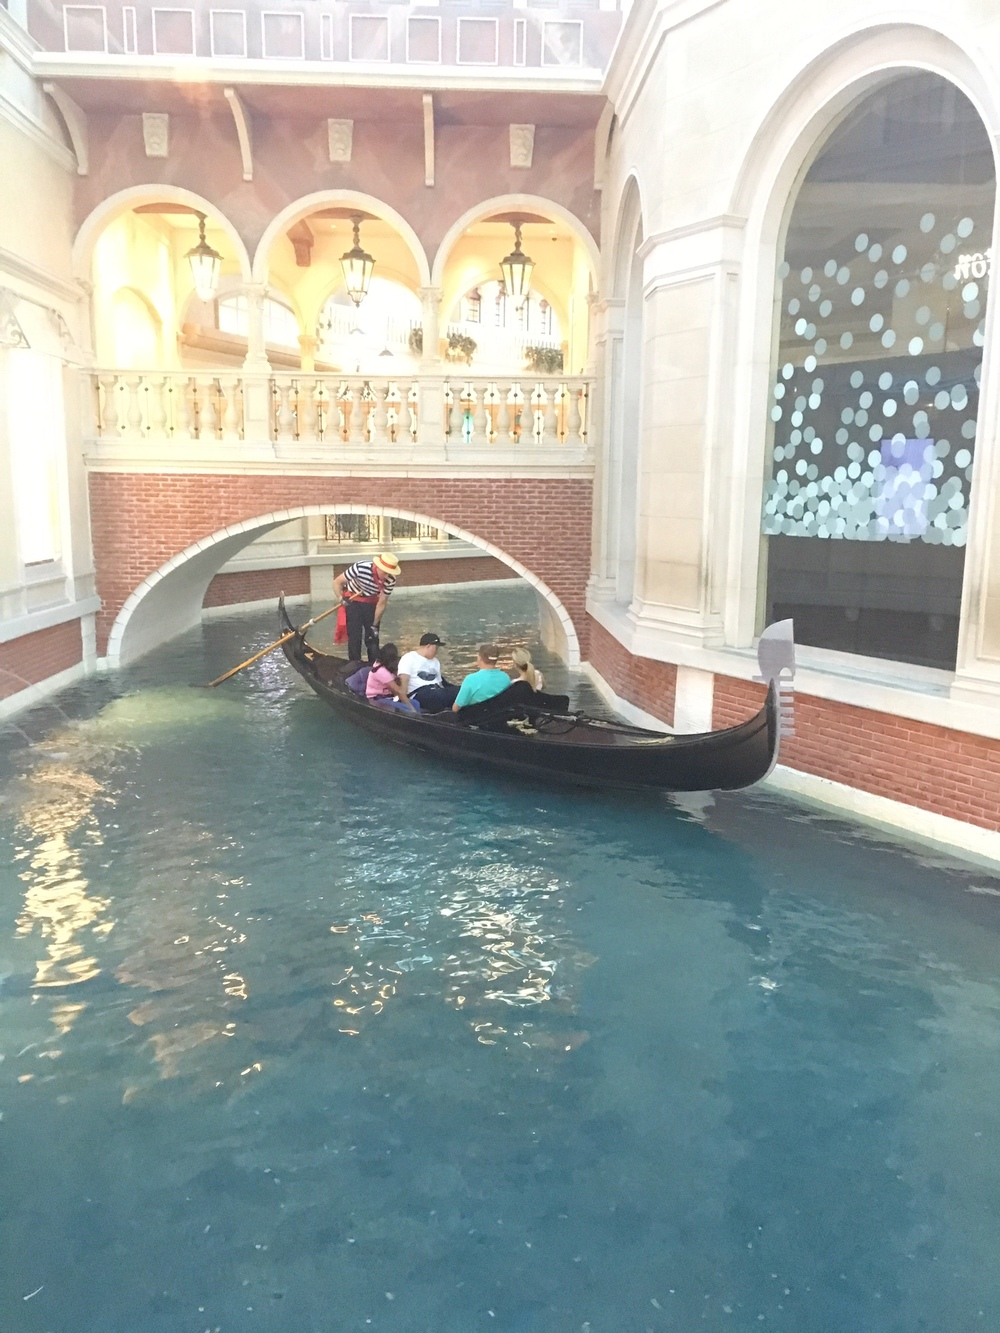 Gondolas at The Venetian